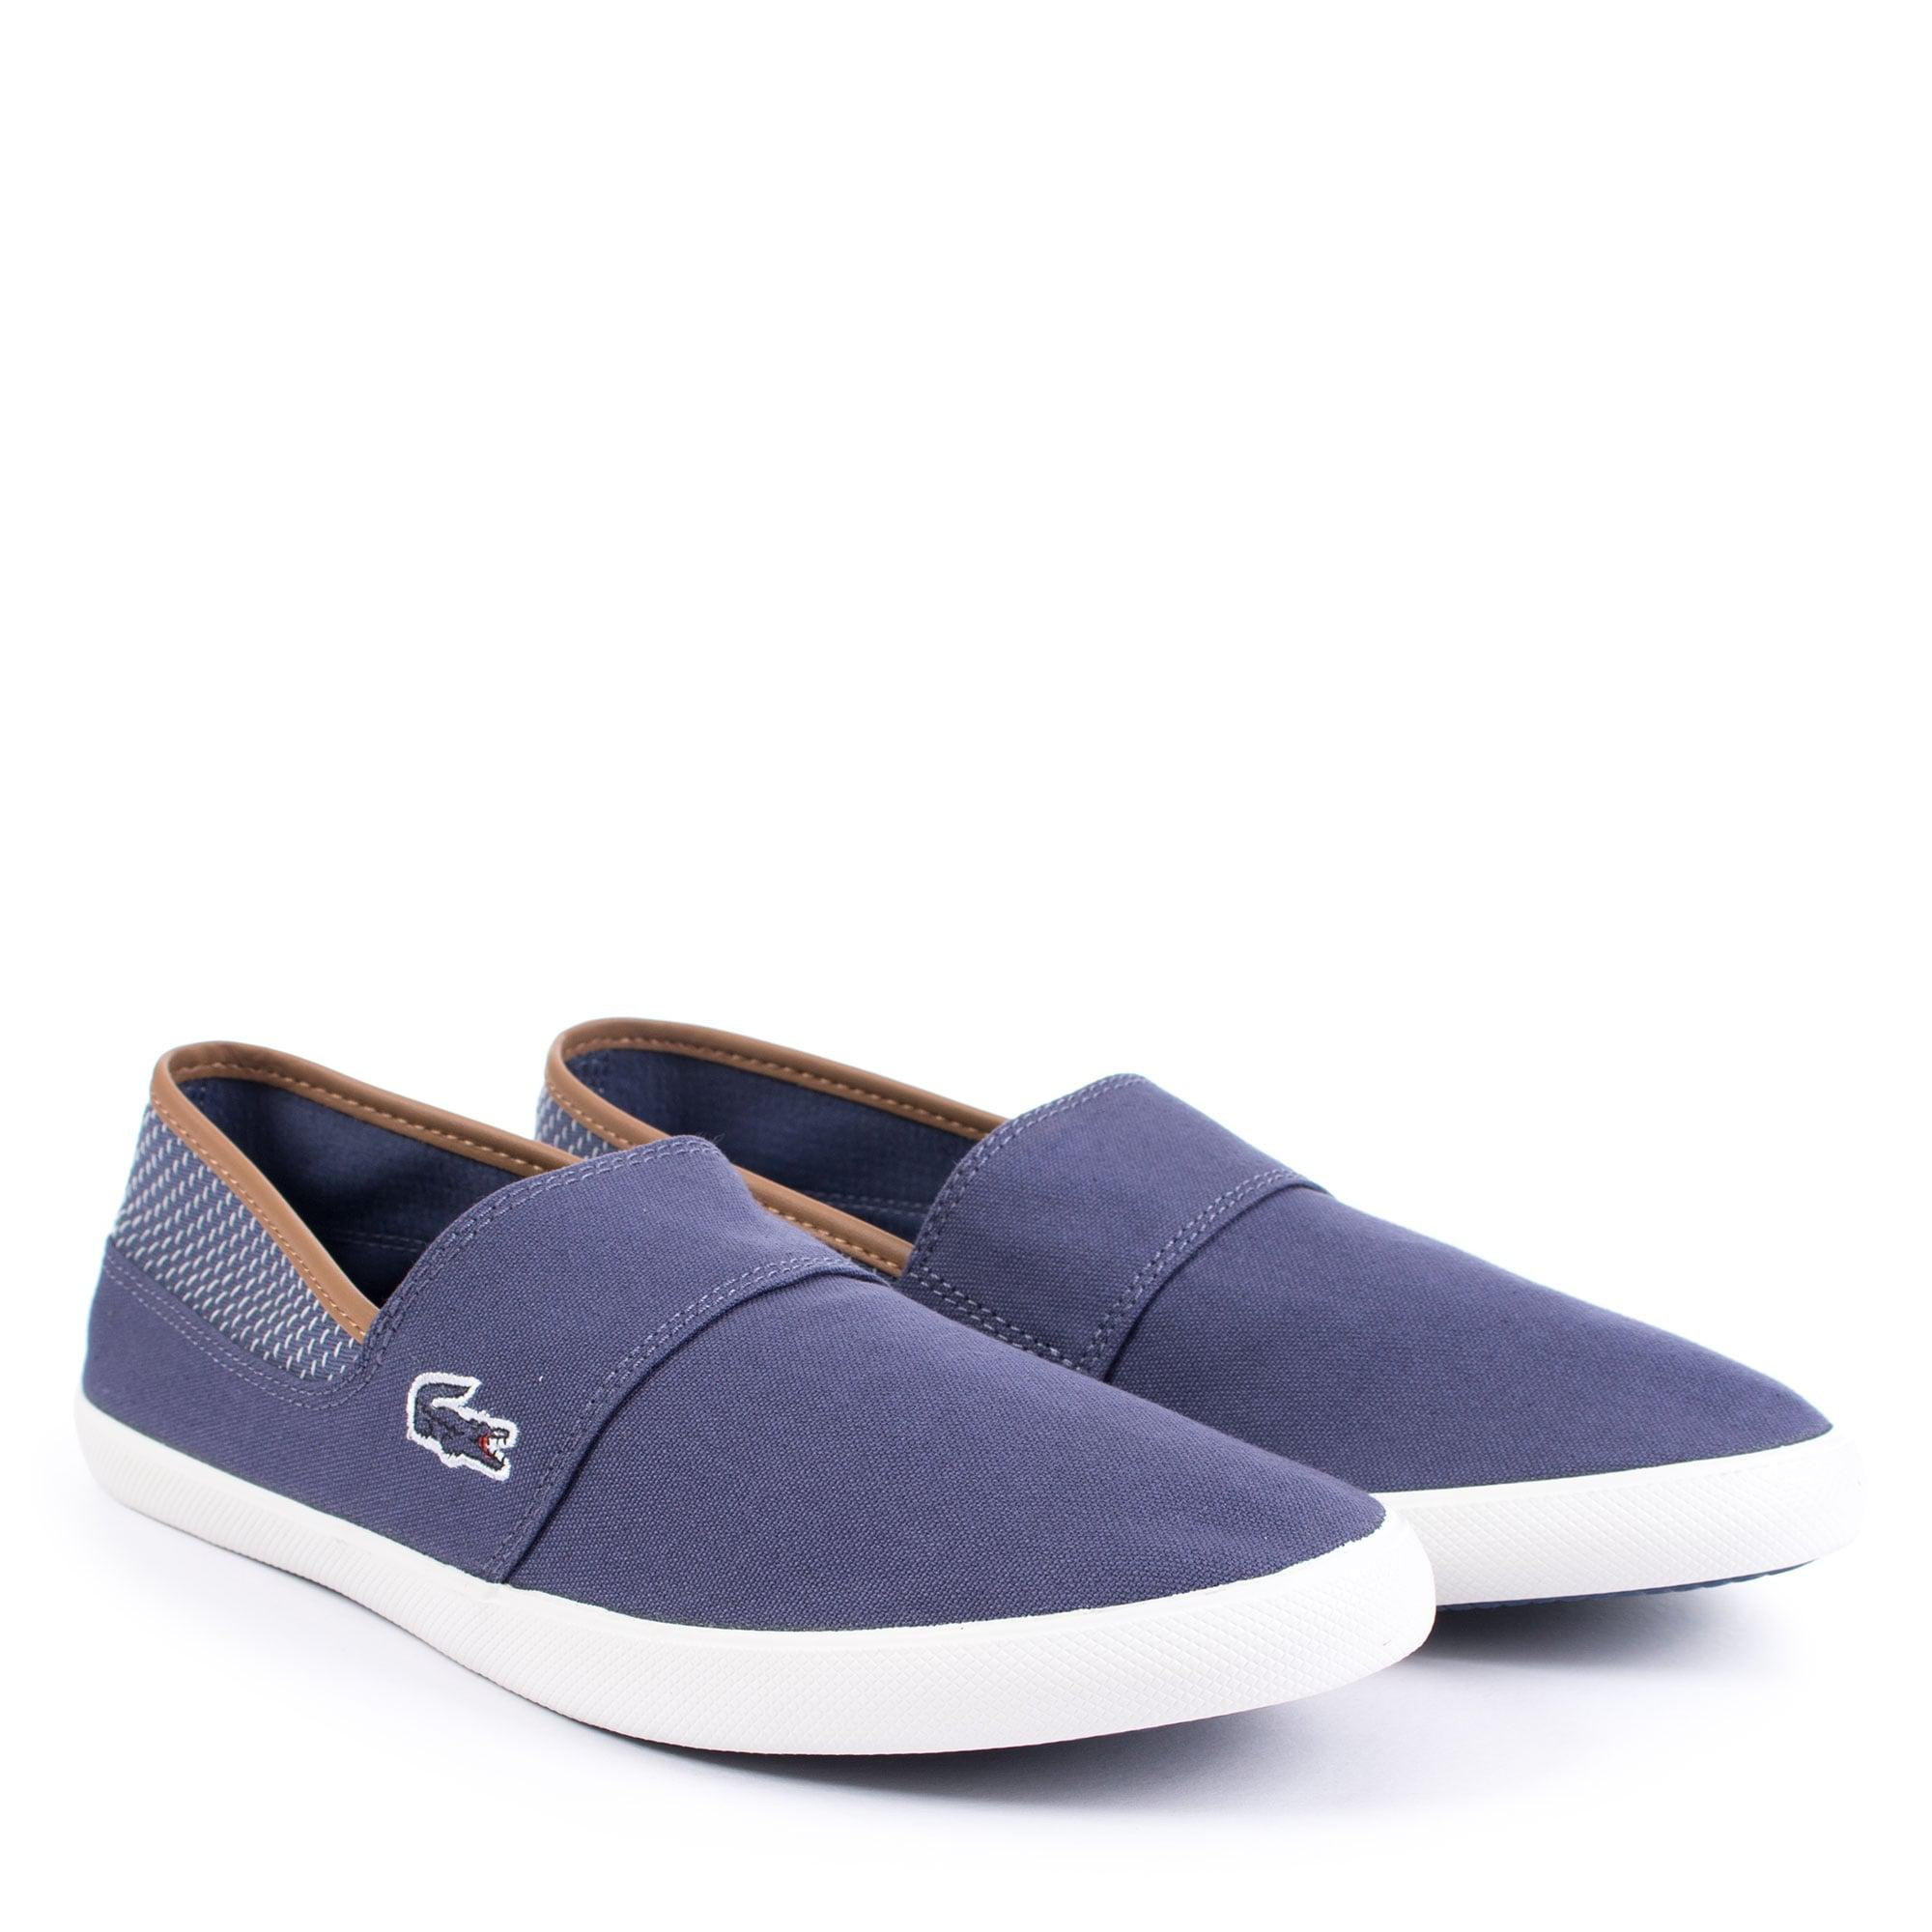 7447c52c8284 Lacoste Marice 118 1 Cam Canvas Slip Ons in Blue - Lyst